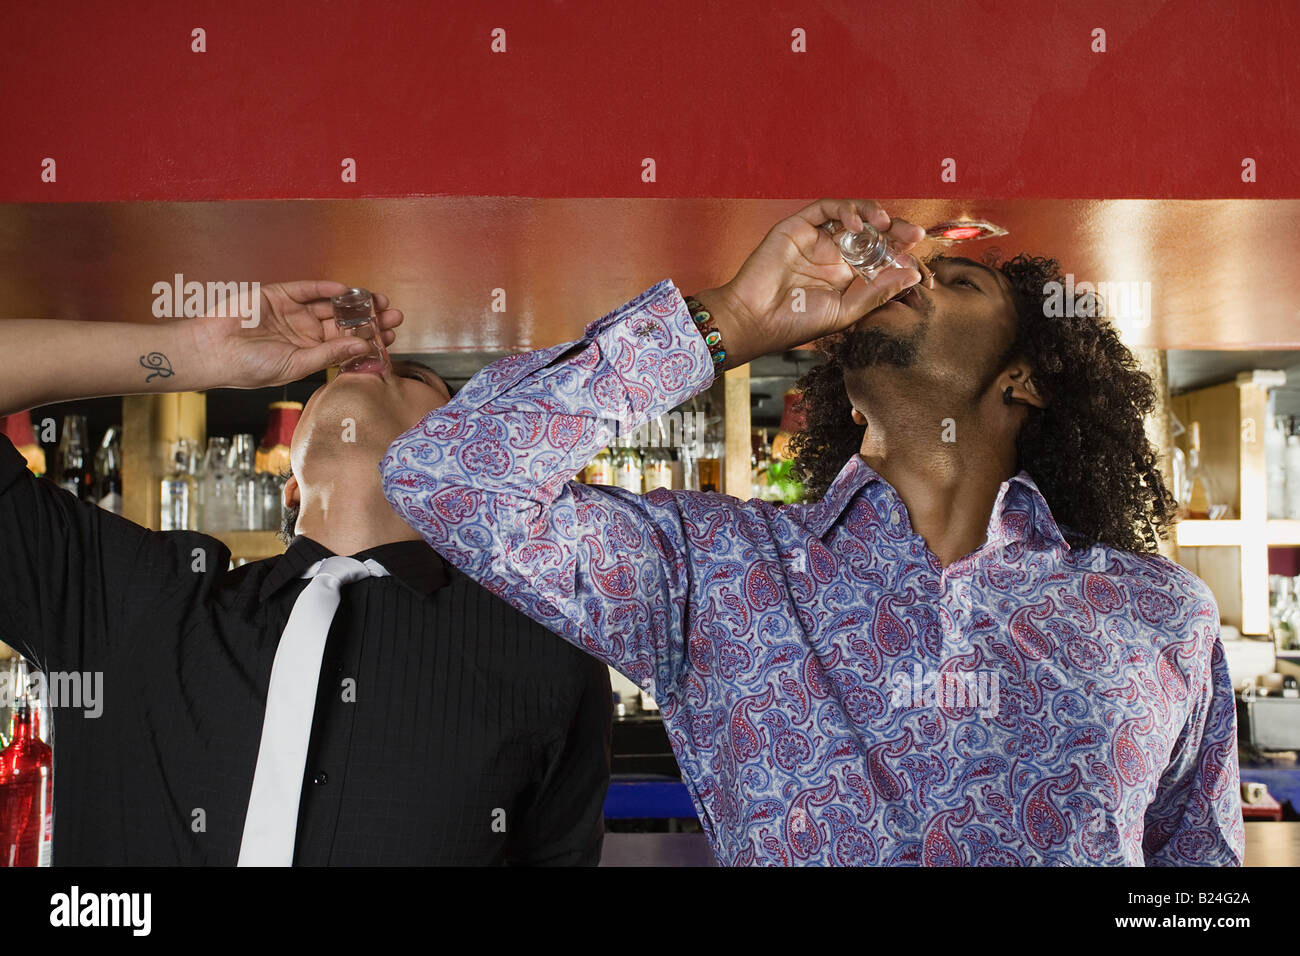 Friends downing shots - Stock Image